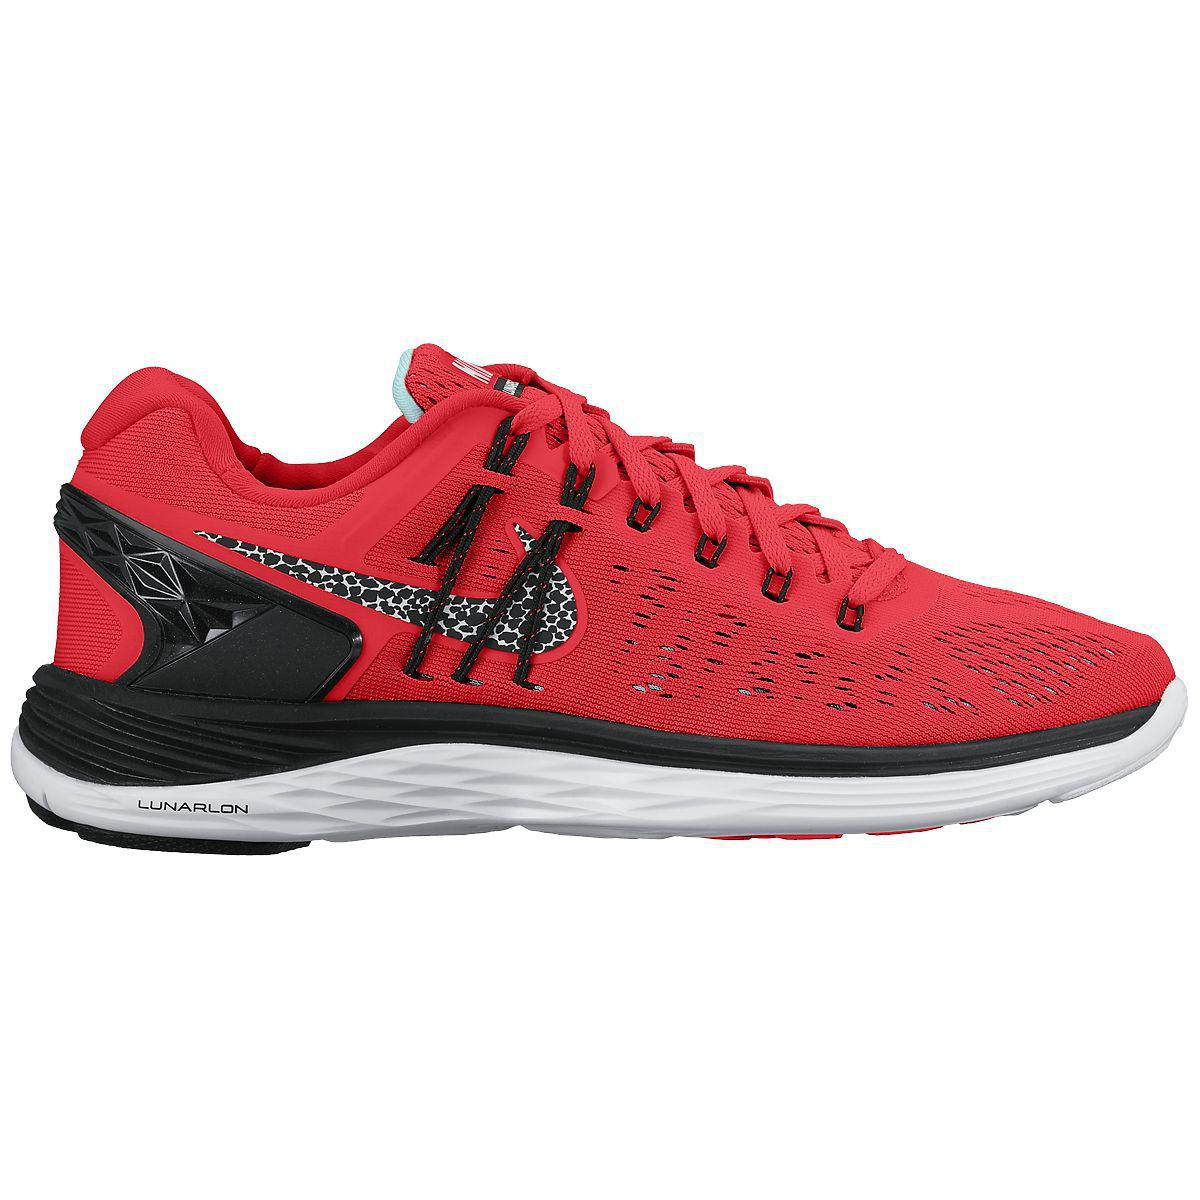 Nike Womens LunarEclipse 5 Running Shoes